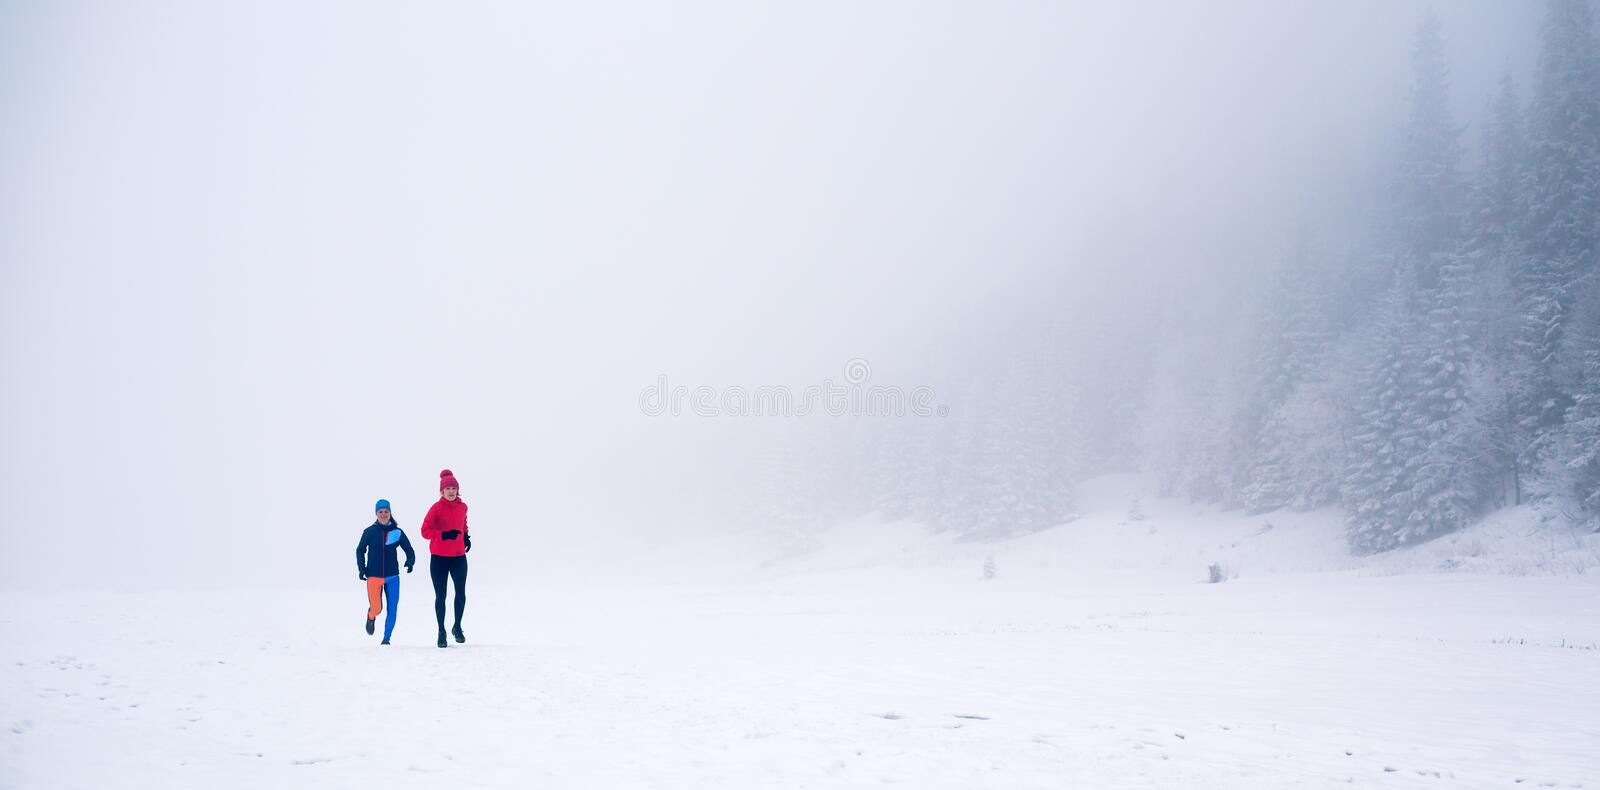 Two women trail running on snow in winter mountains stock photography